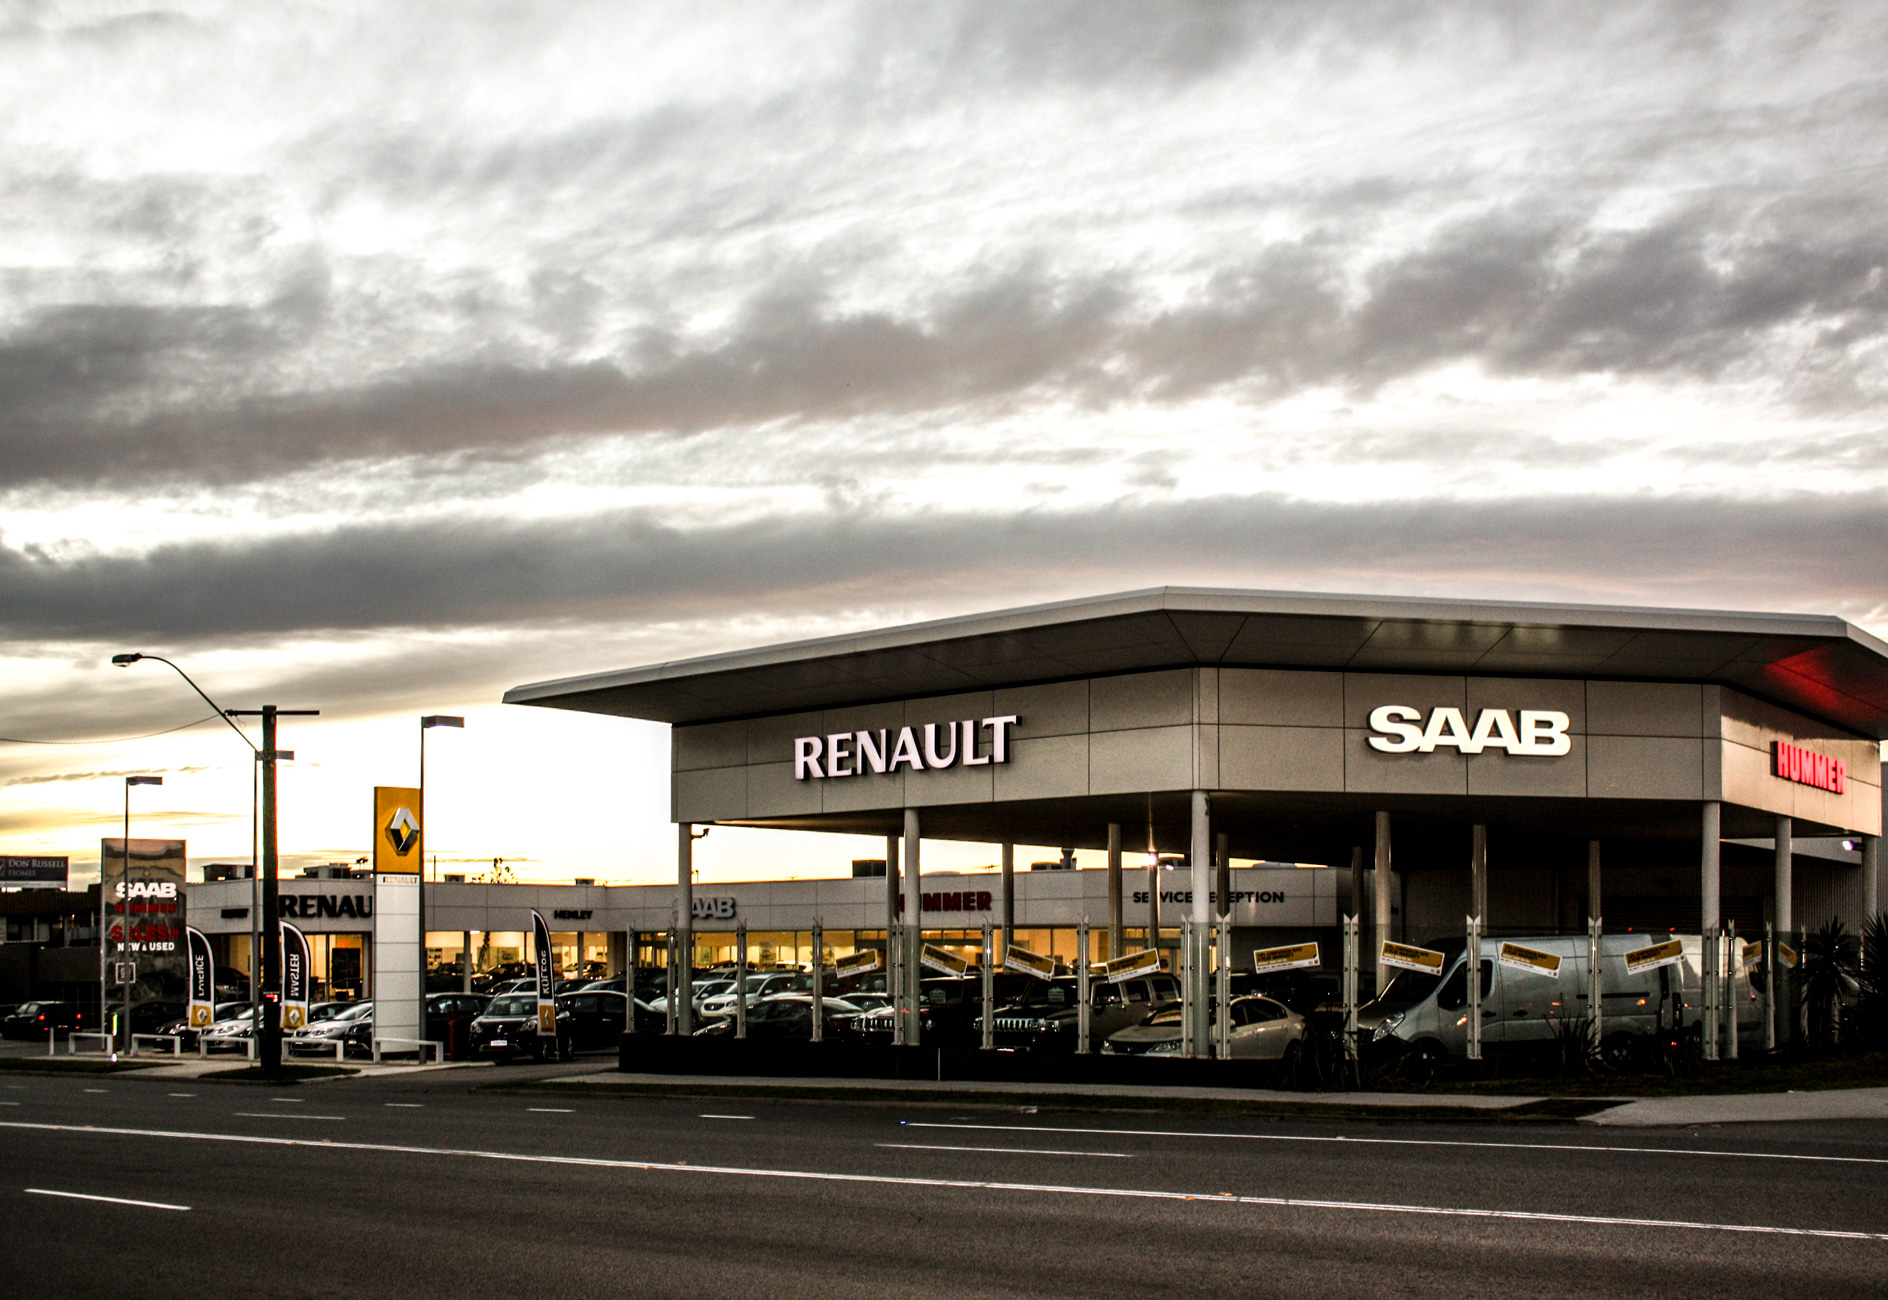 car showroom building against cloudy sky